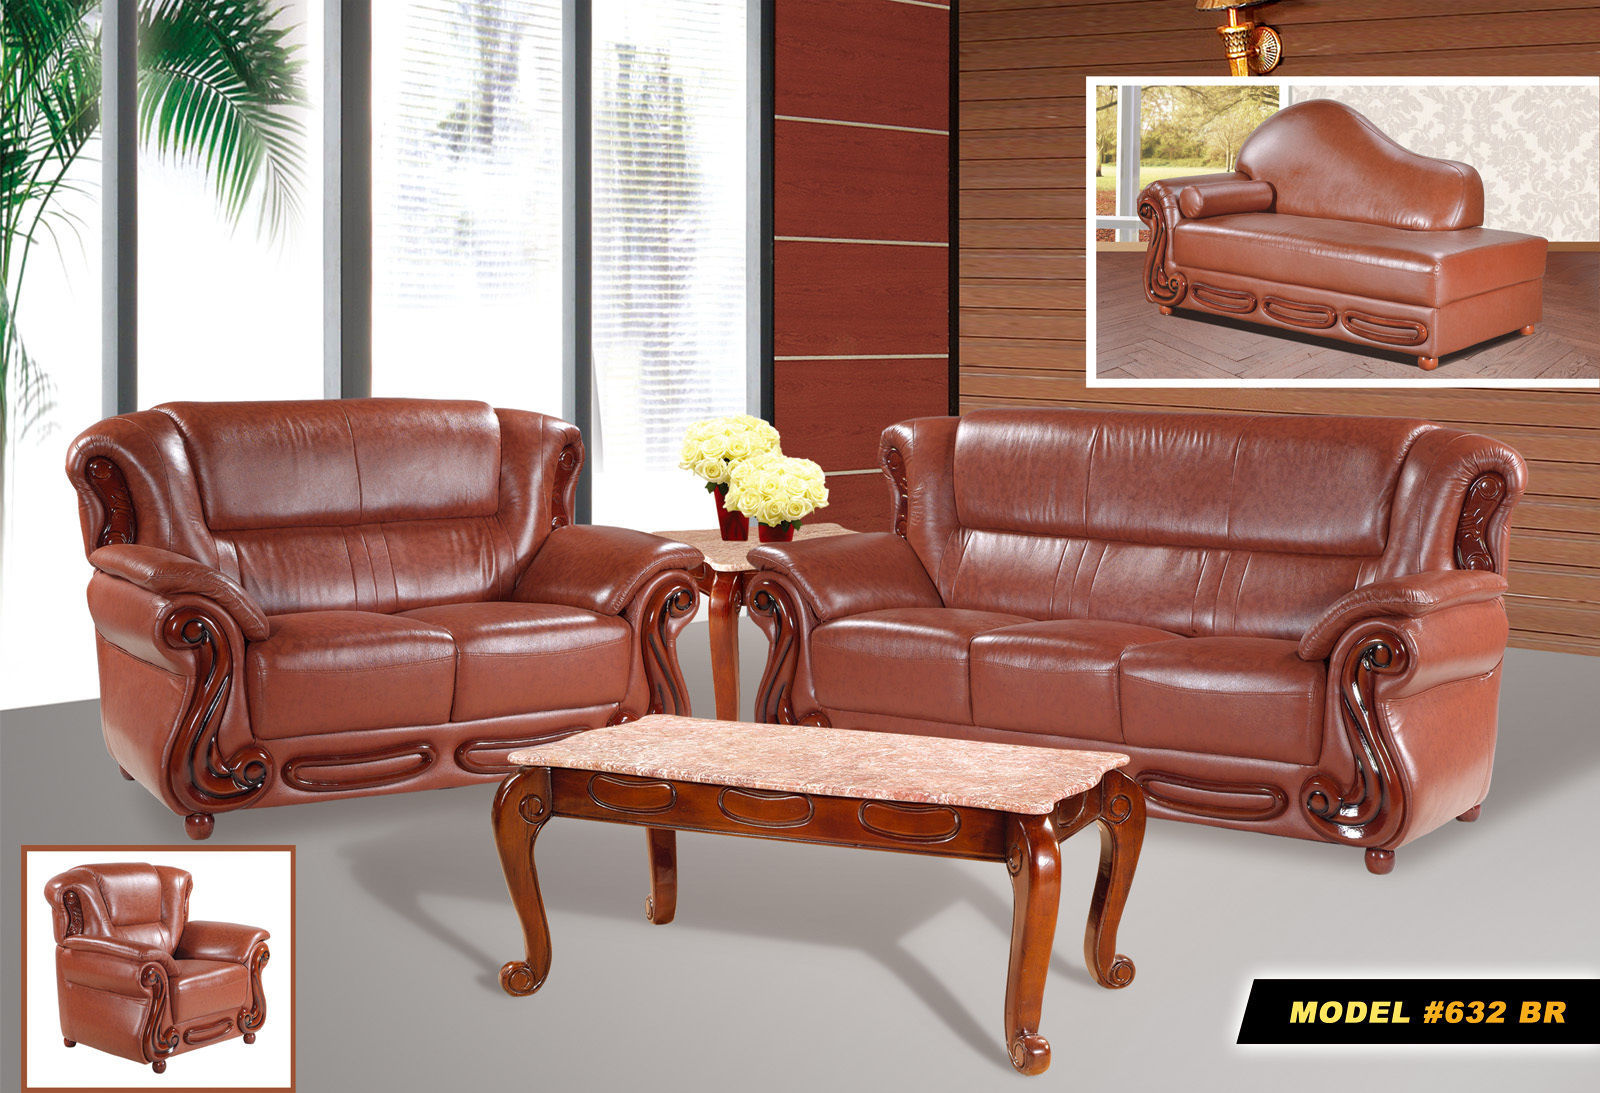 Meridian 632 Bella Living Room Set 2pcs in Brown Bonded Leather Traditional